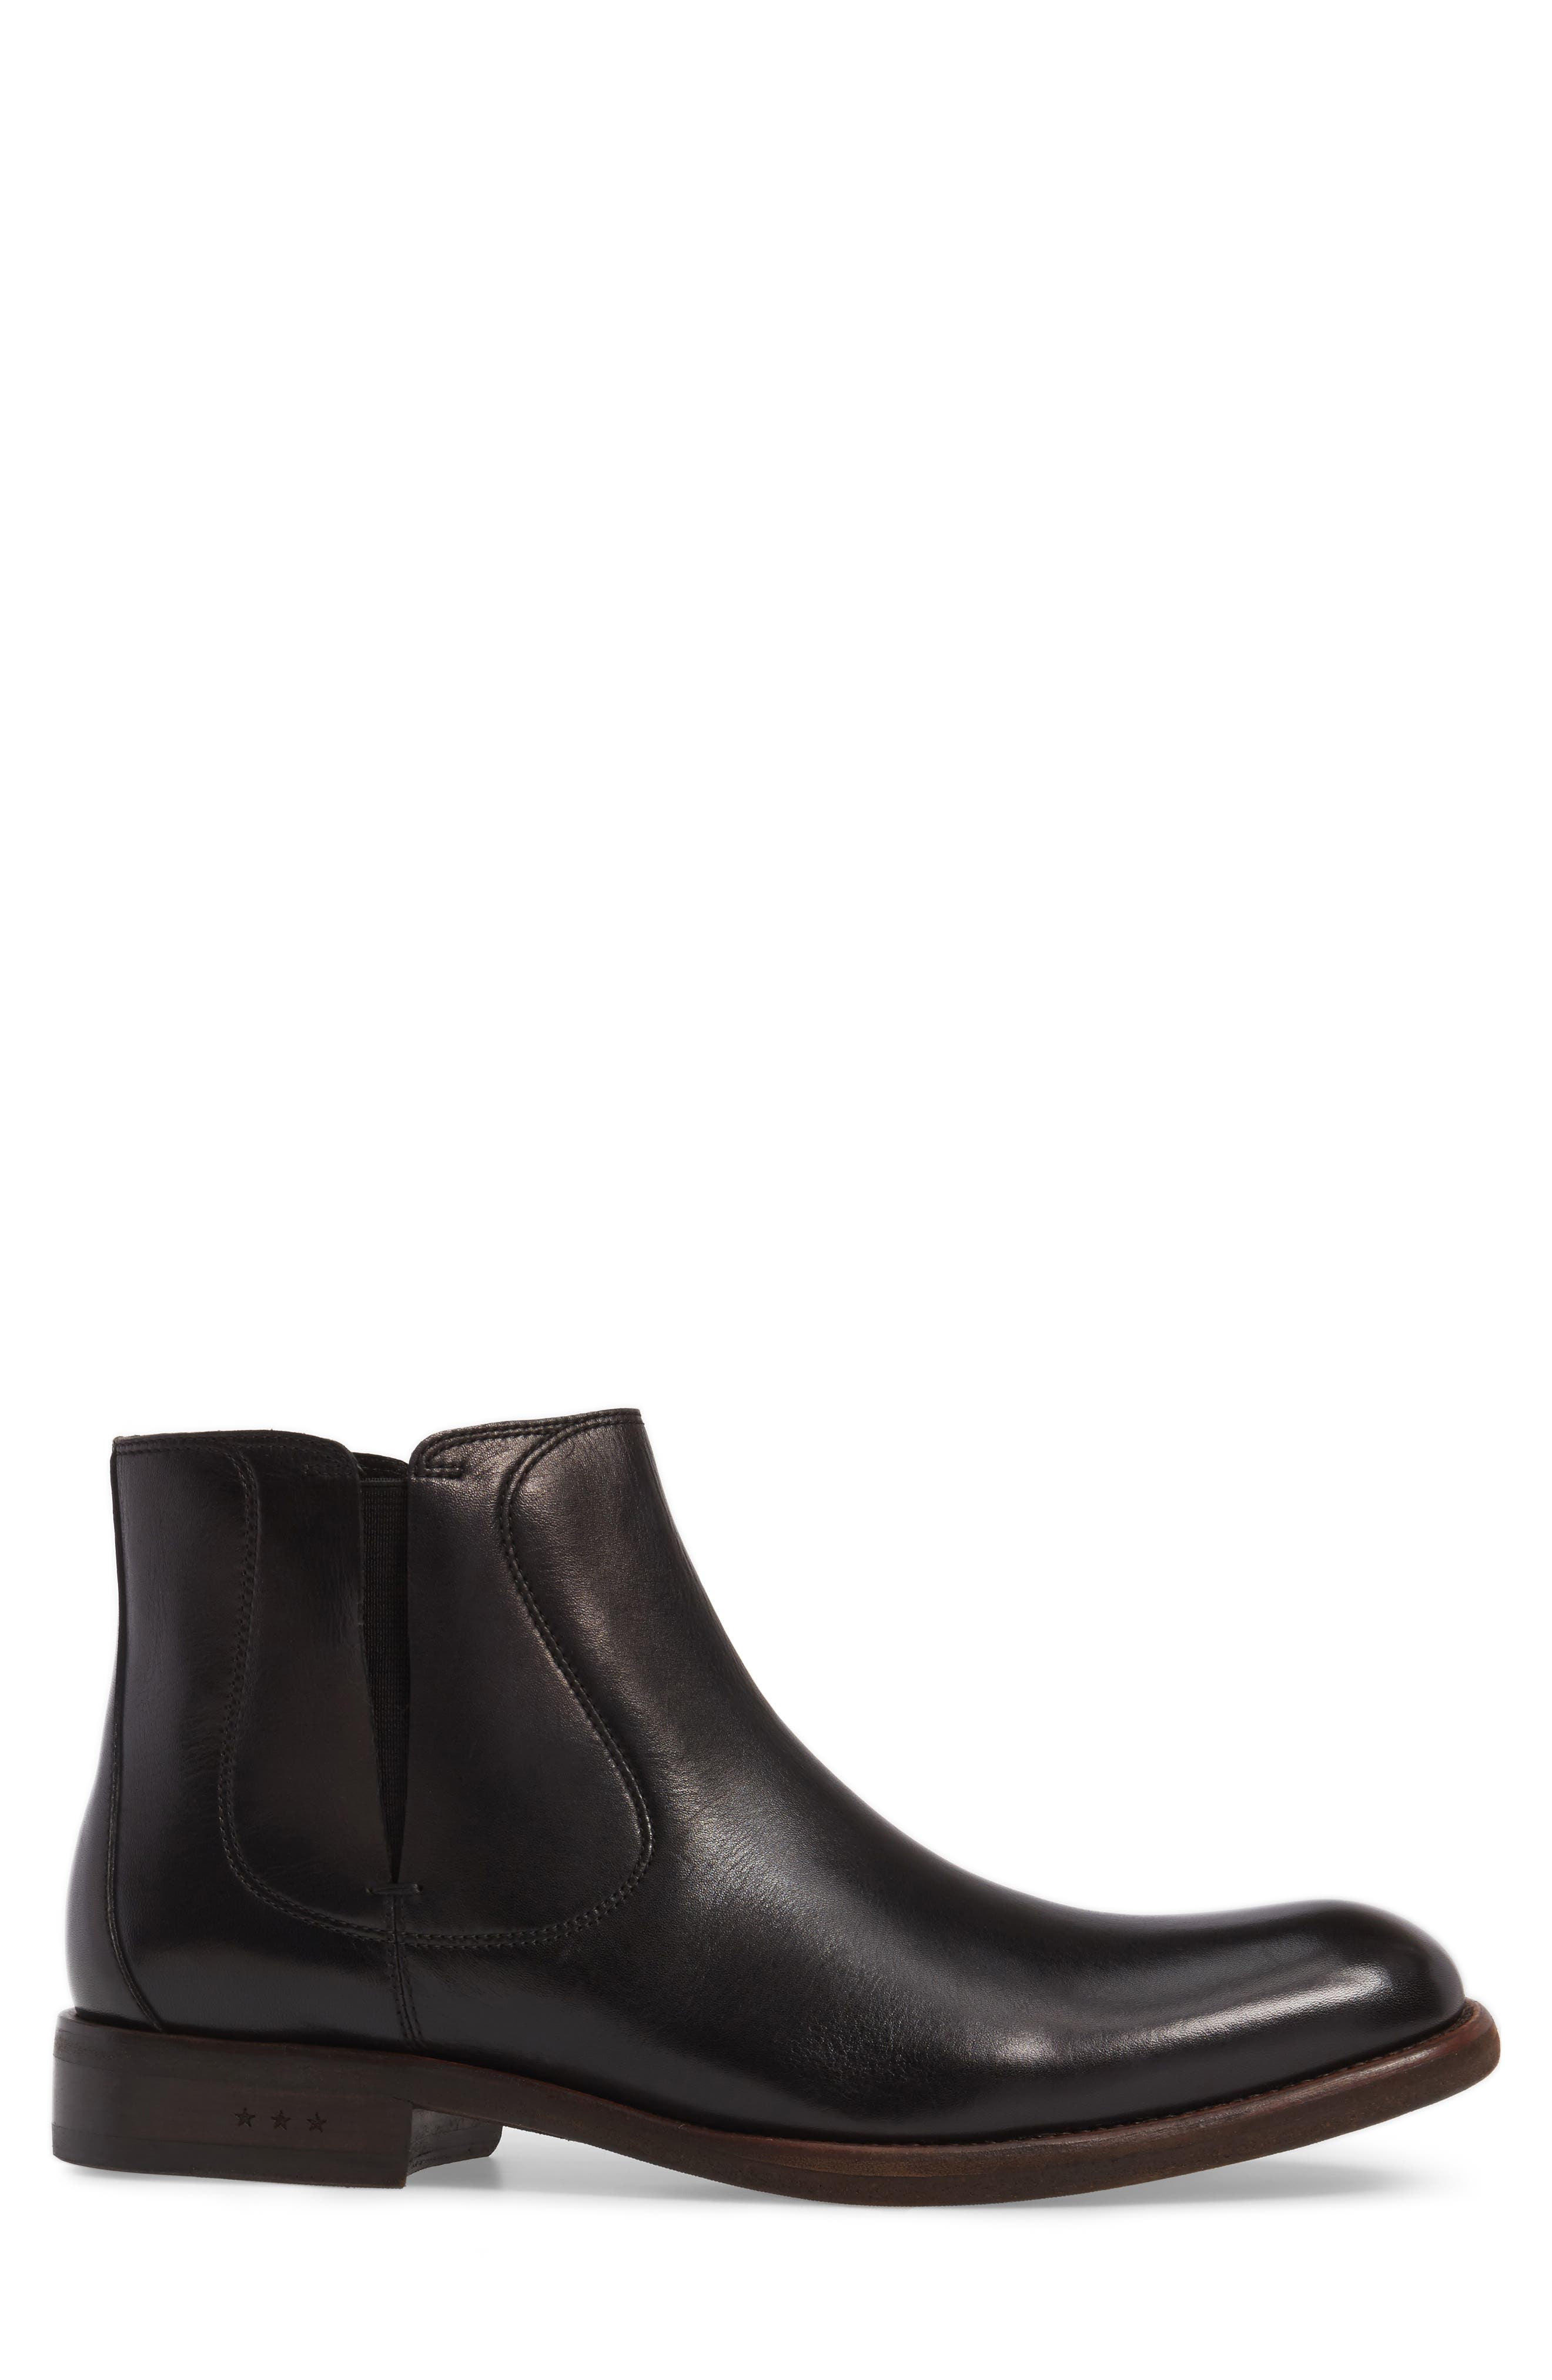 Waverley Chelsea Boot,                             Alternate thumbnail 3, color,                             BLACK LEATHER